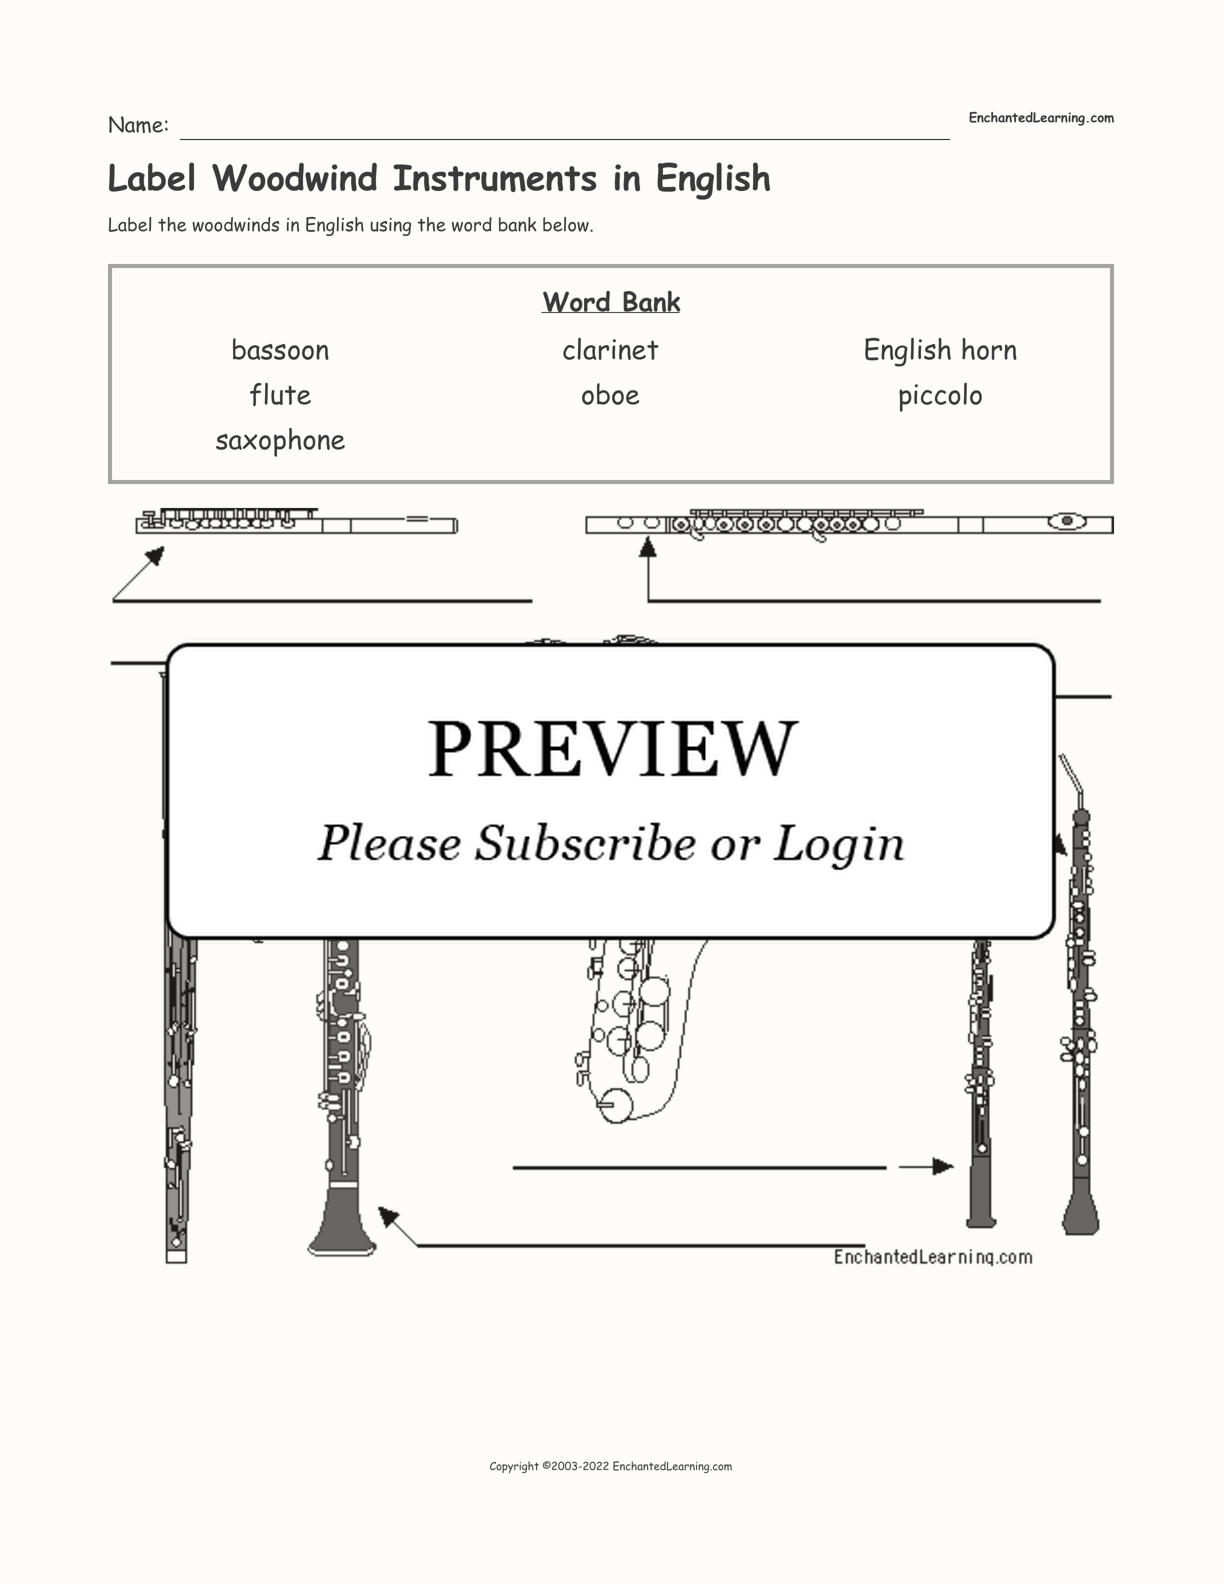 Label Woodwind Instruments in English interactive worksheet page 1